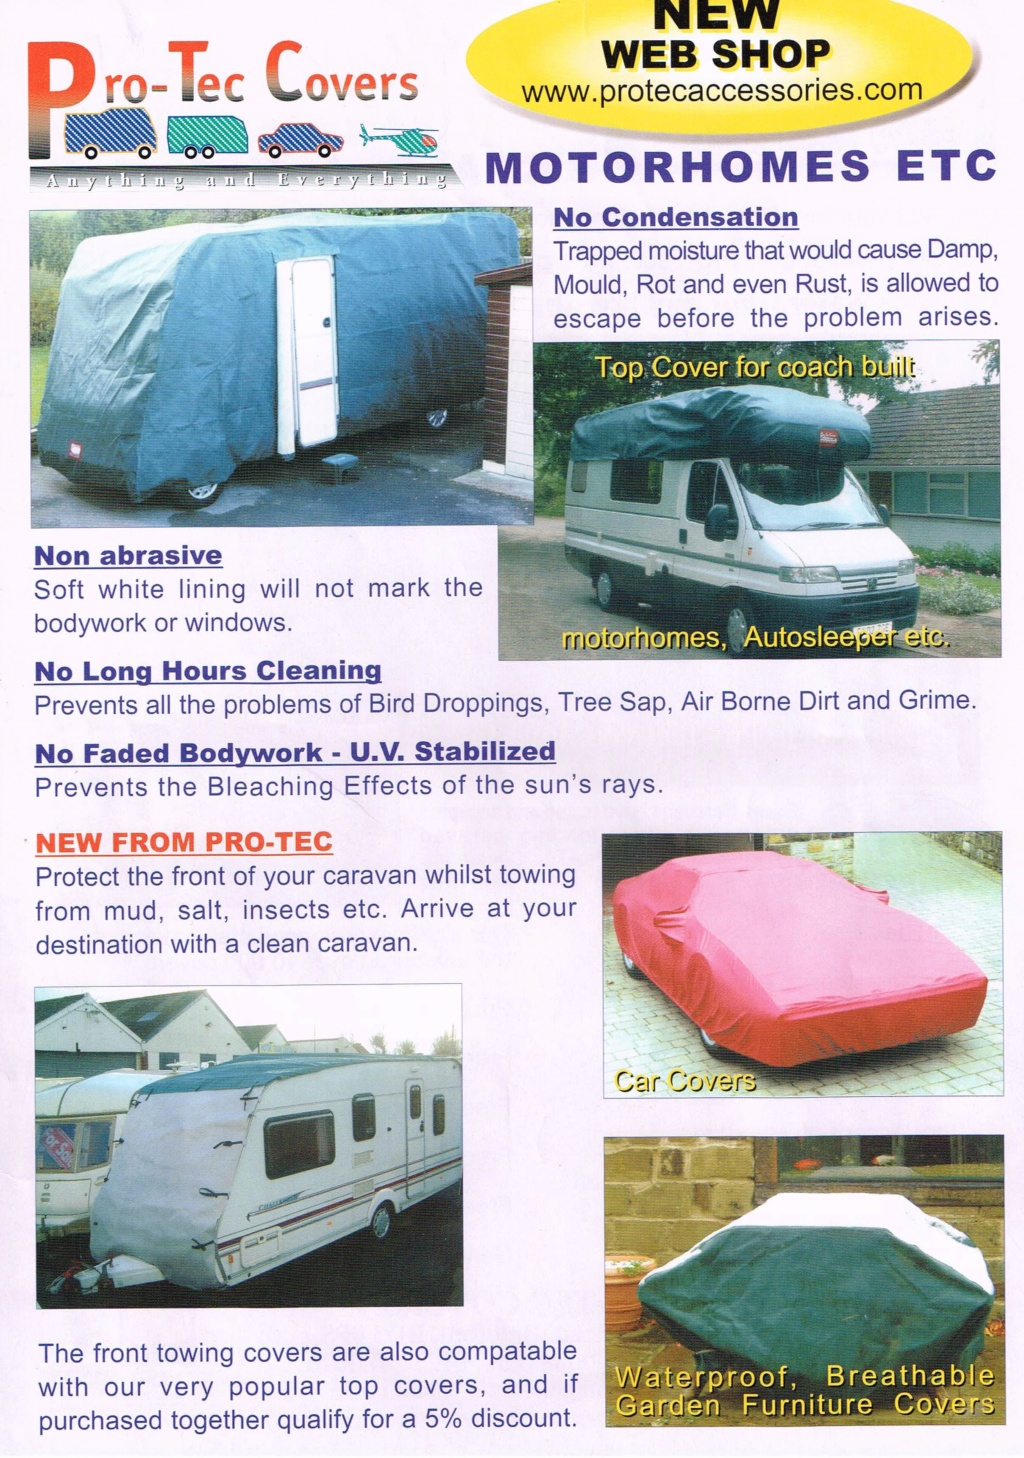 Pro-Tec Motorhome Cover Fits A/S   SOLD Bps10010